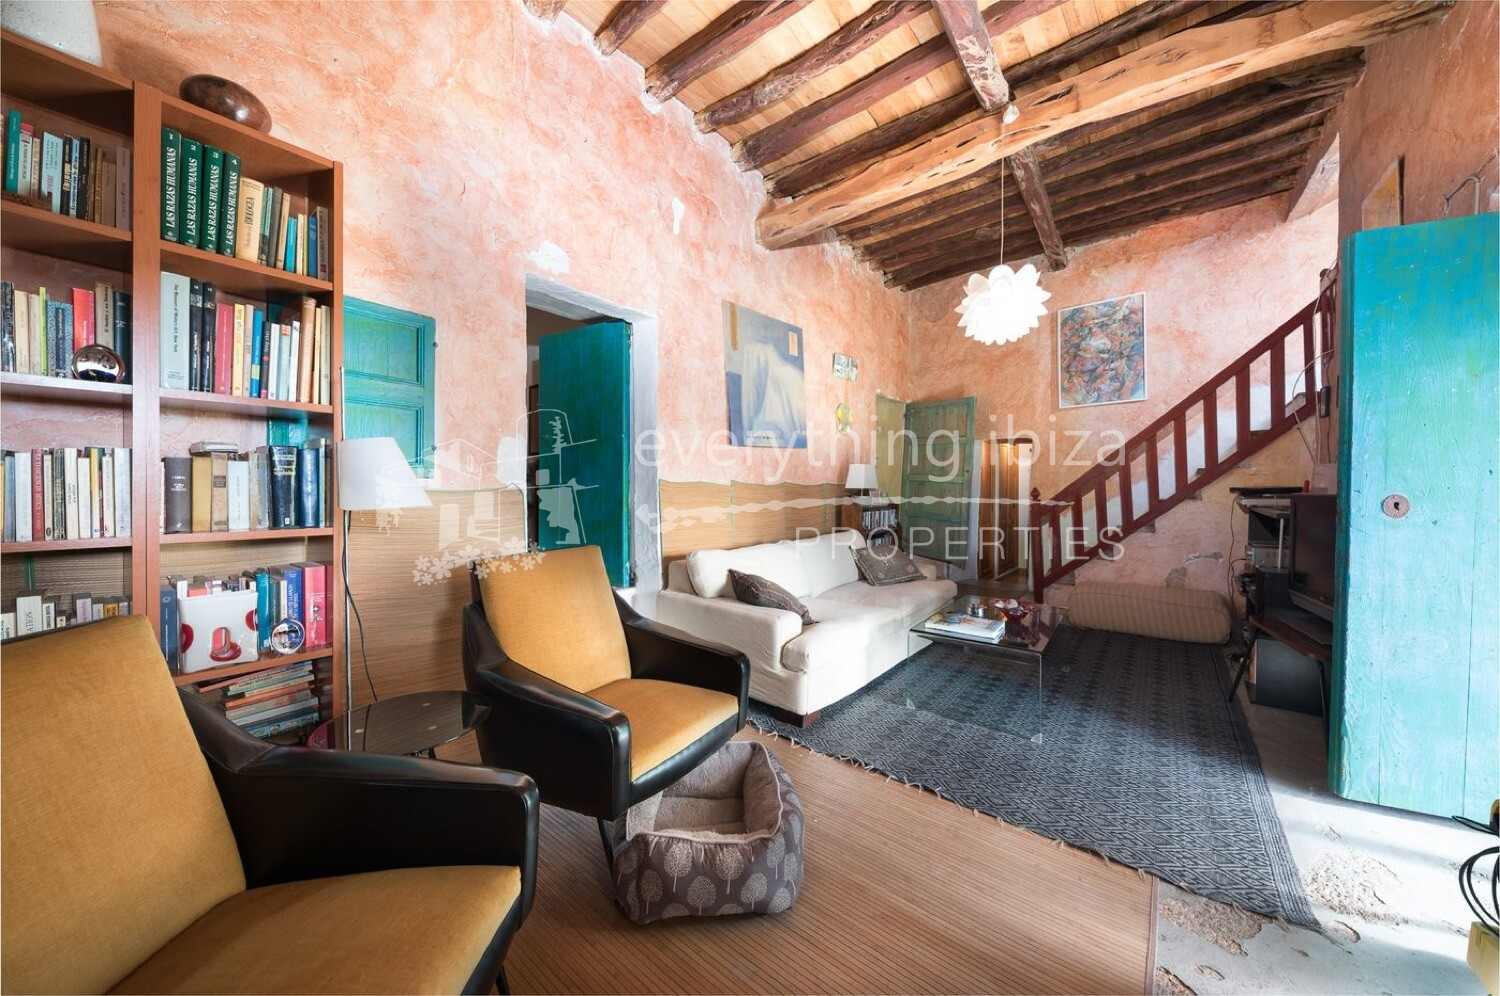 Lovely Traditional Finca near Santa Gertrudis, ref. 1343, for sale in Ibiza by everything ibiza Properties